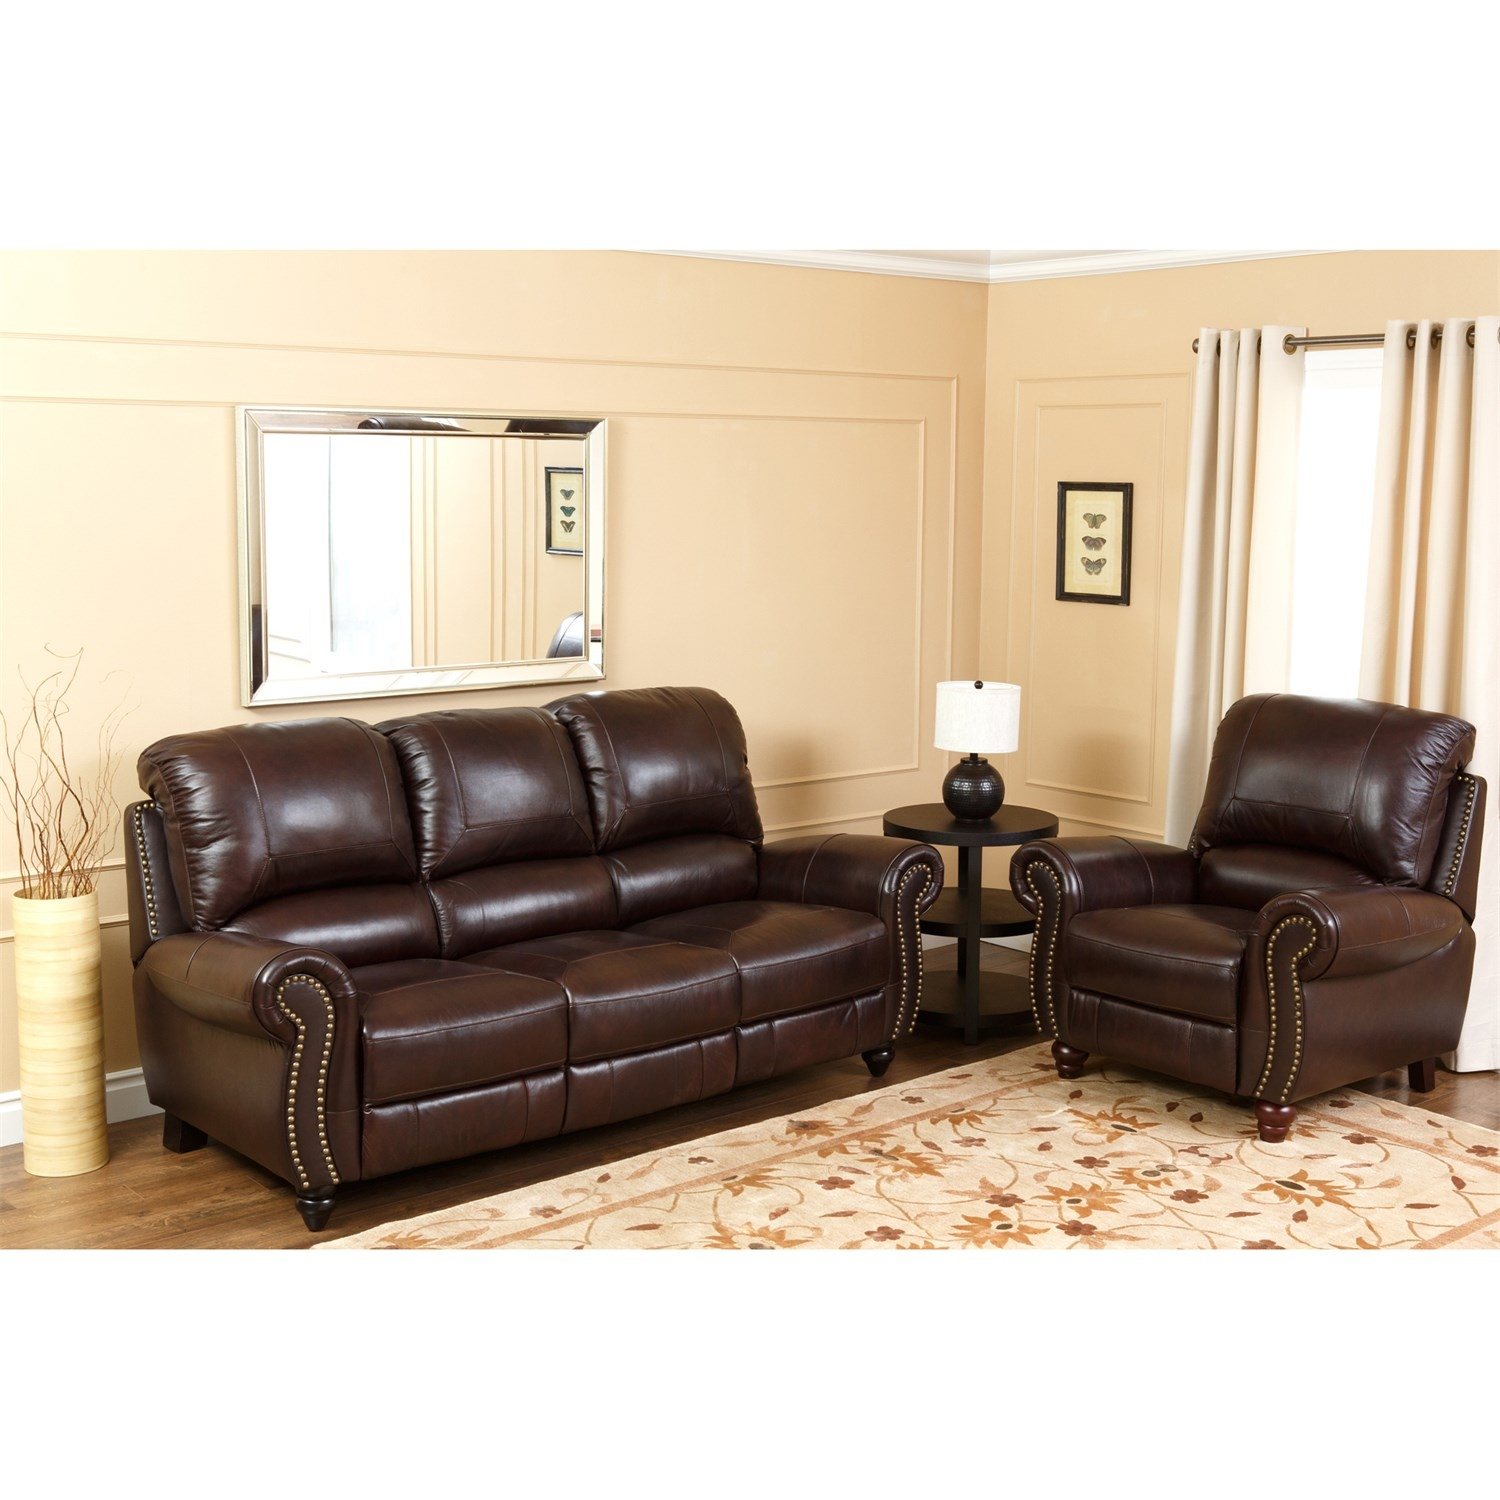 Abson Living Ch 8857 Brg 31 Canterbury Leather Pushback Regarding Canterbury Leather Sofas (Image 2 of 15)